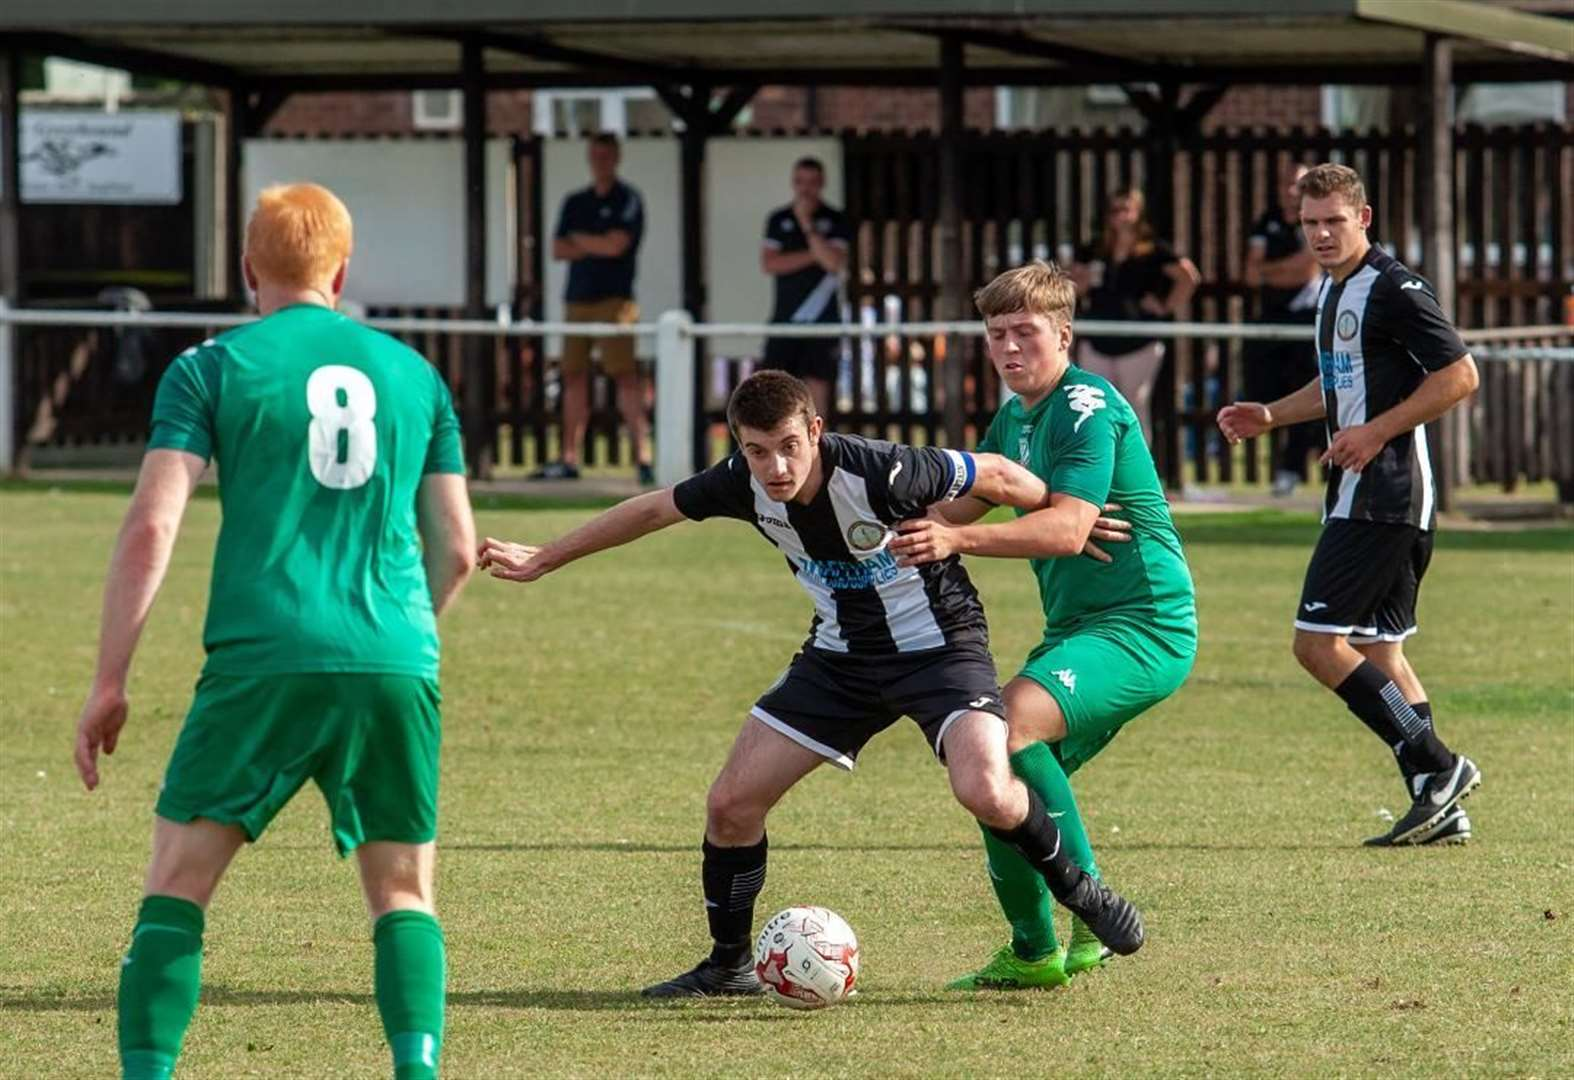 League leaders Downham Town continue excellent start to new season